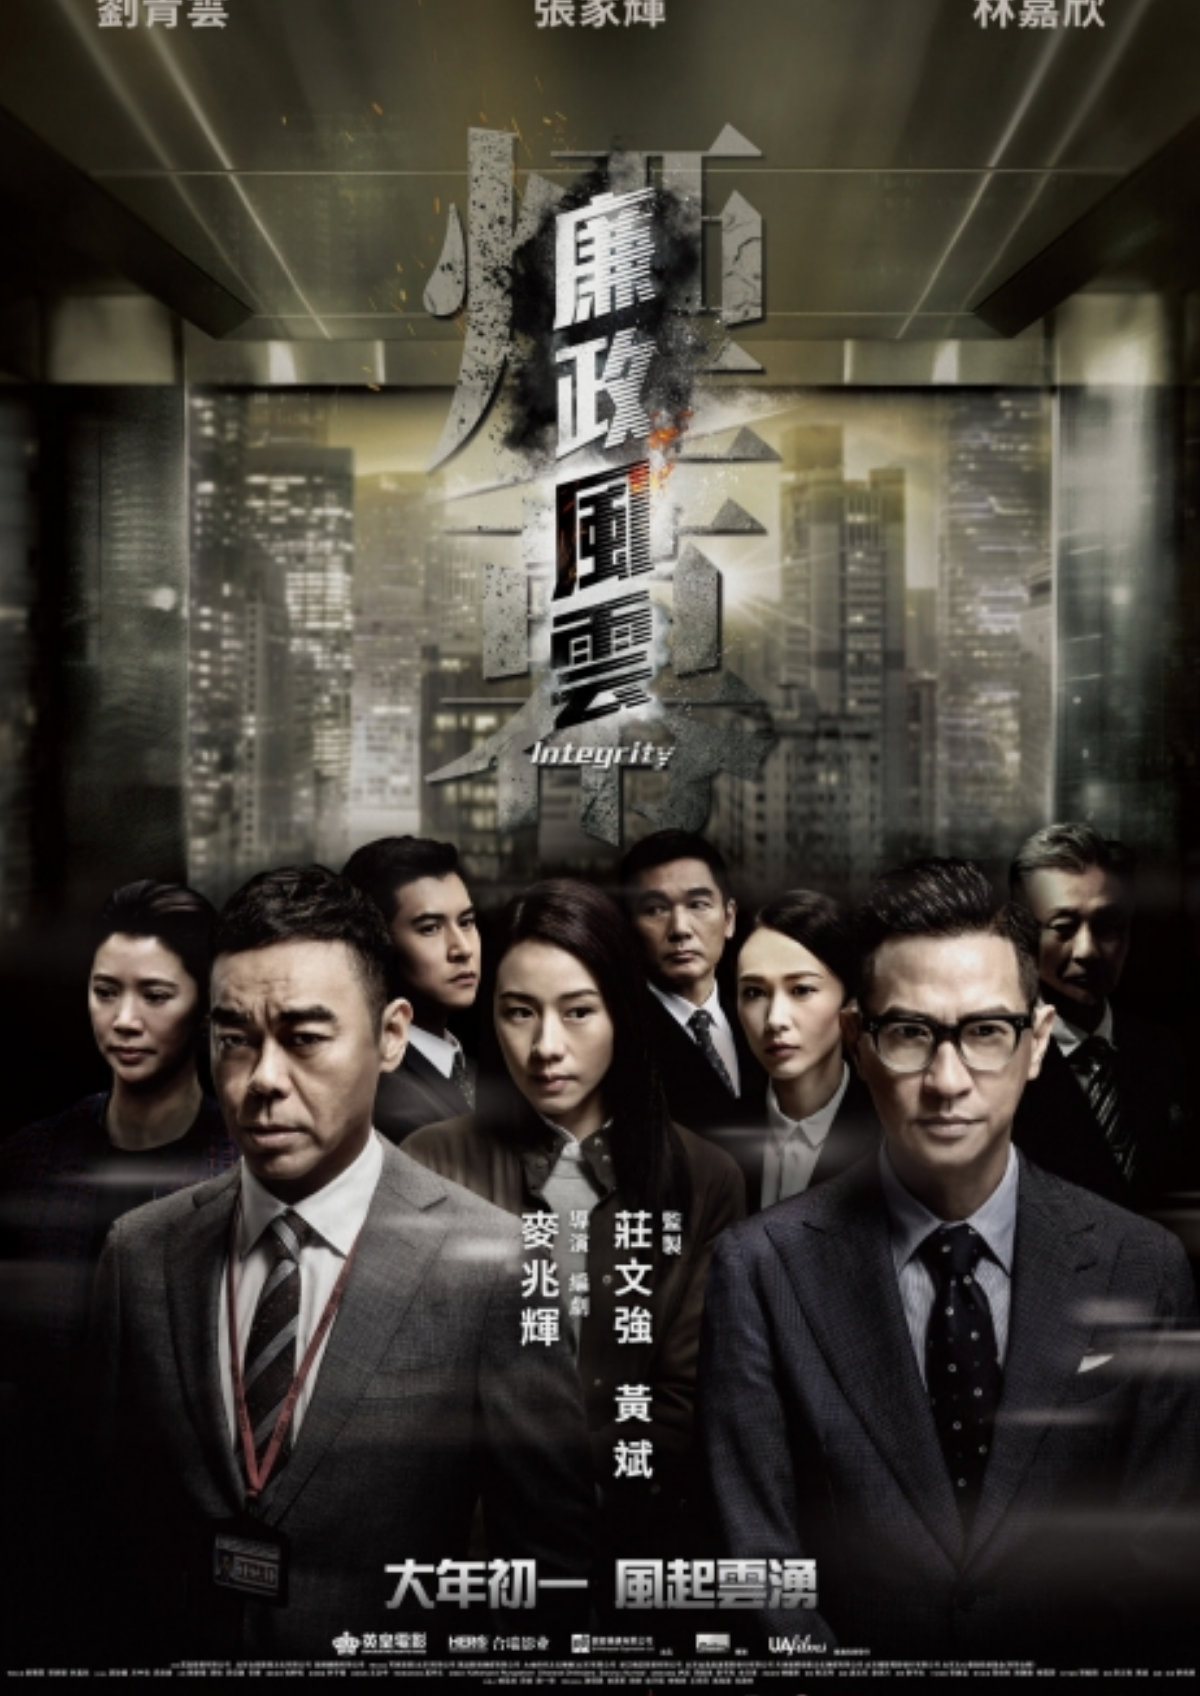 'Integrity' movie poster